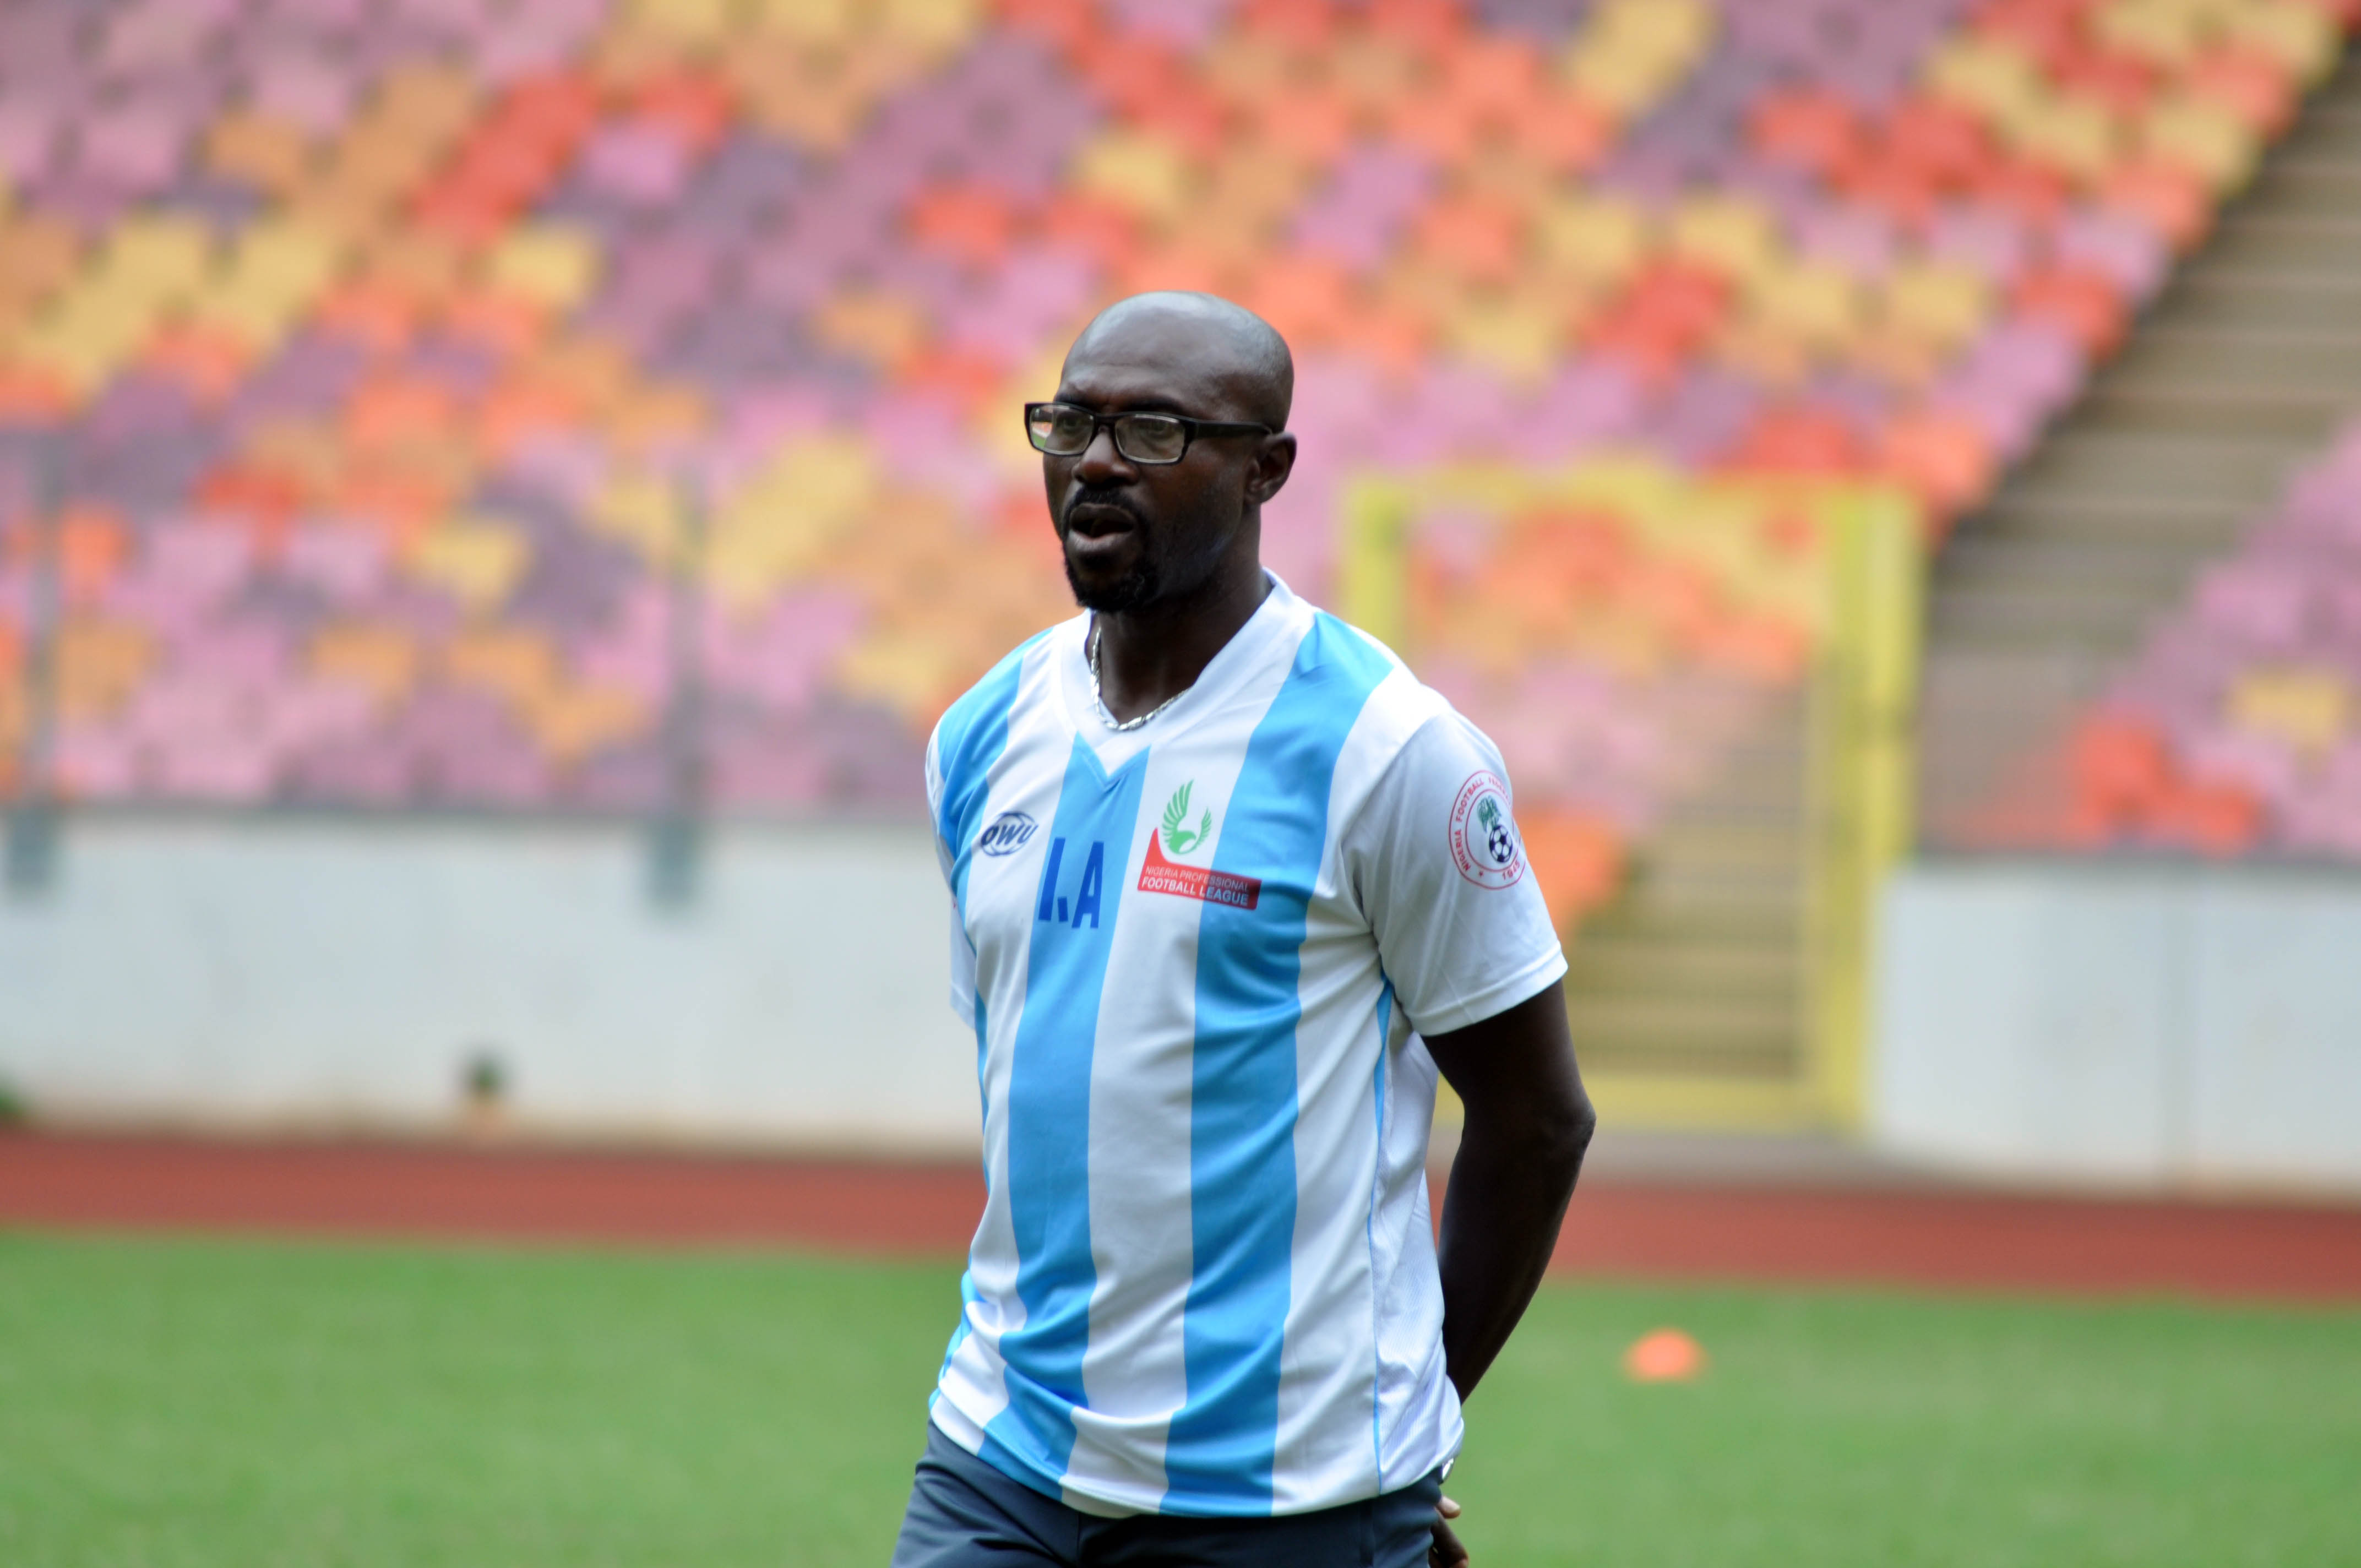 Ex Eagles coach Imama to replace Ndube at Abia Warriors - Latest Sports News In Nigeria